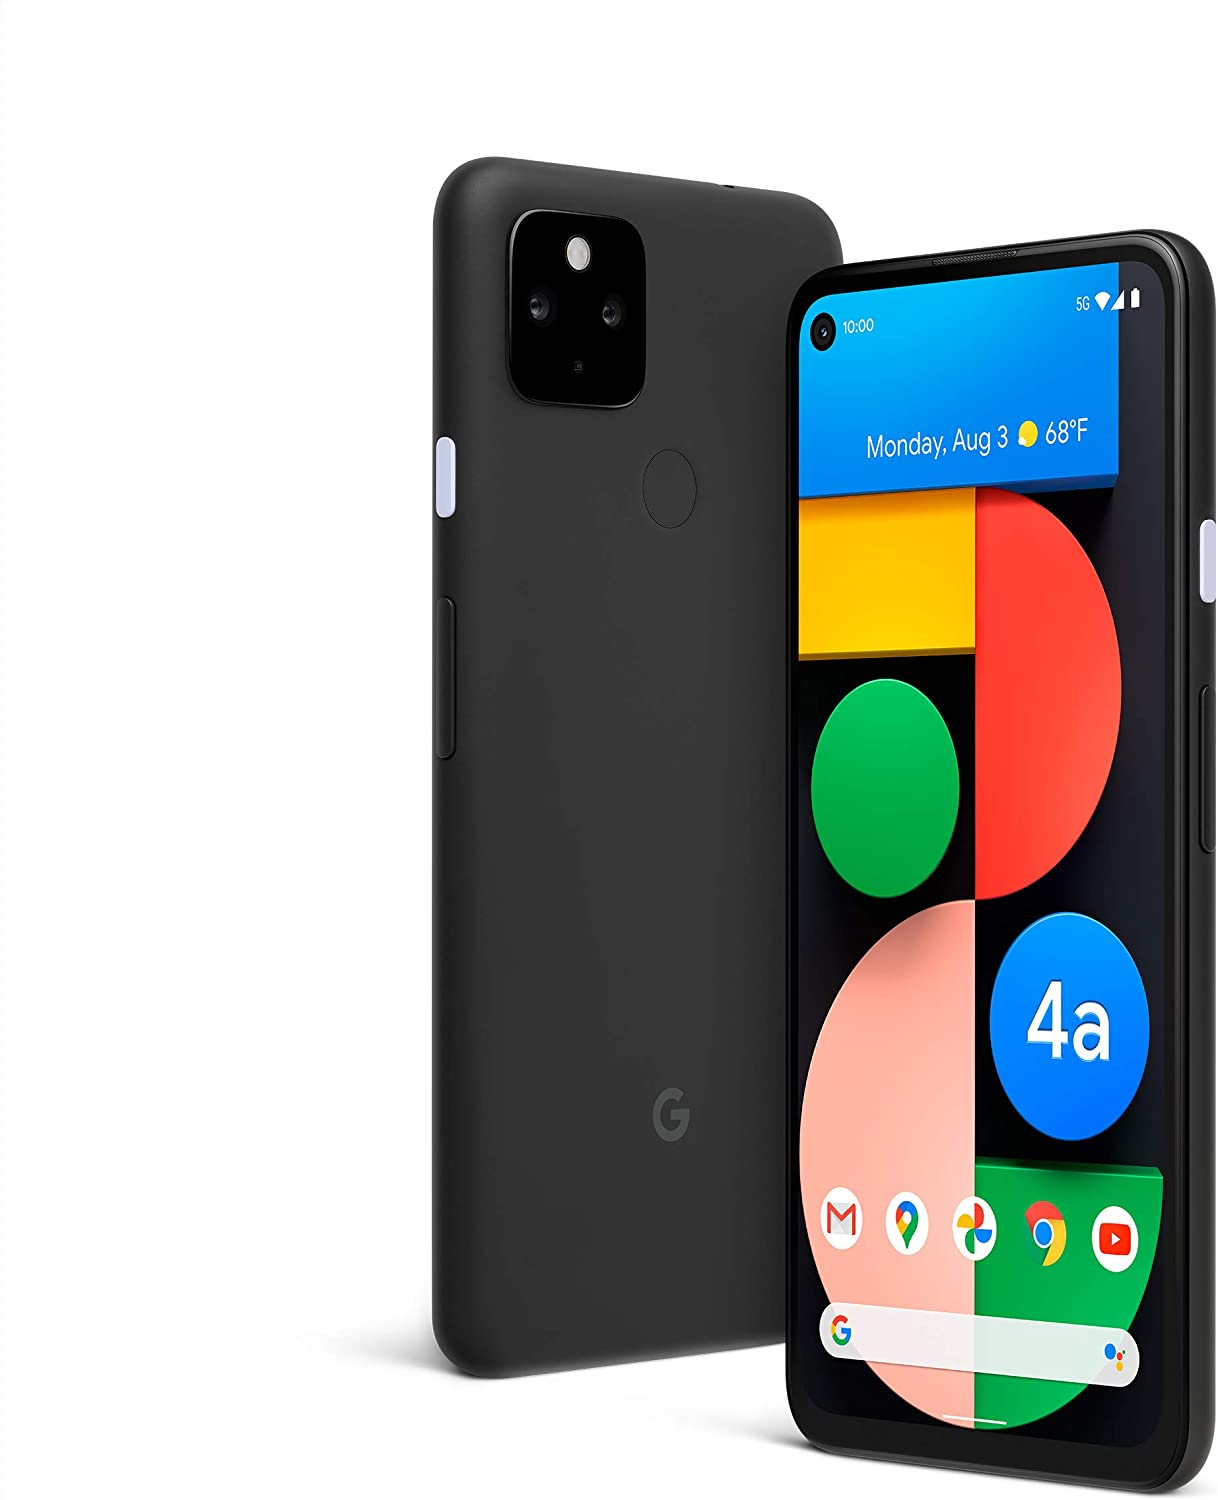 Google Pixel 4a with 5G - Android Phone - New Unlocked Smartphone with Night Sight and Ultrawide Lens - Just Black